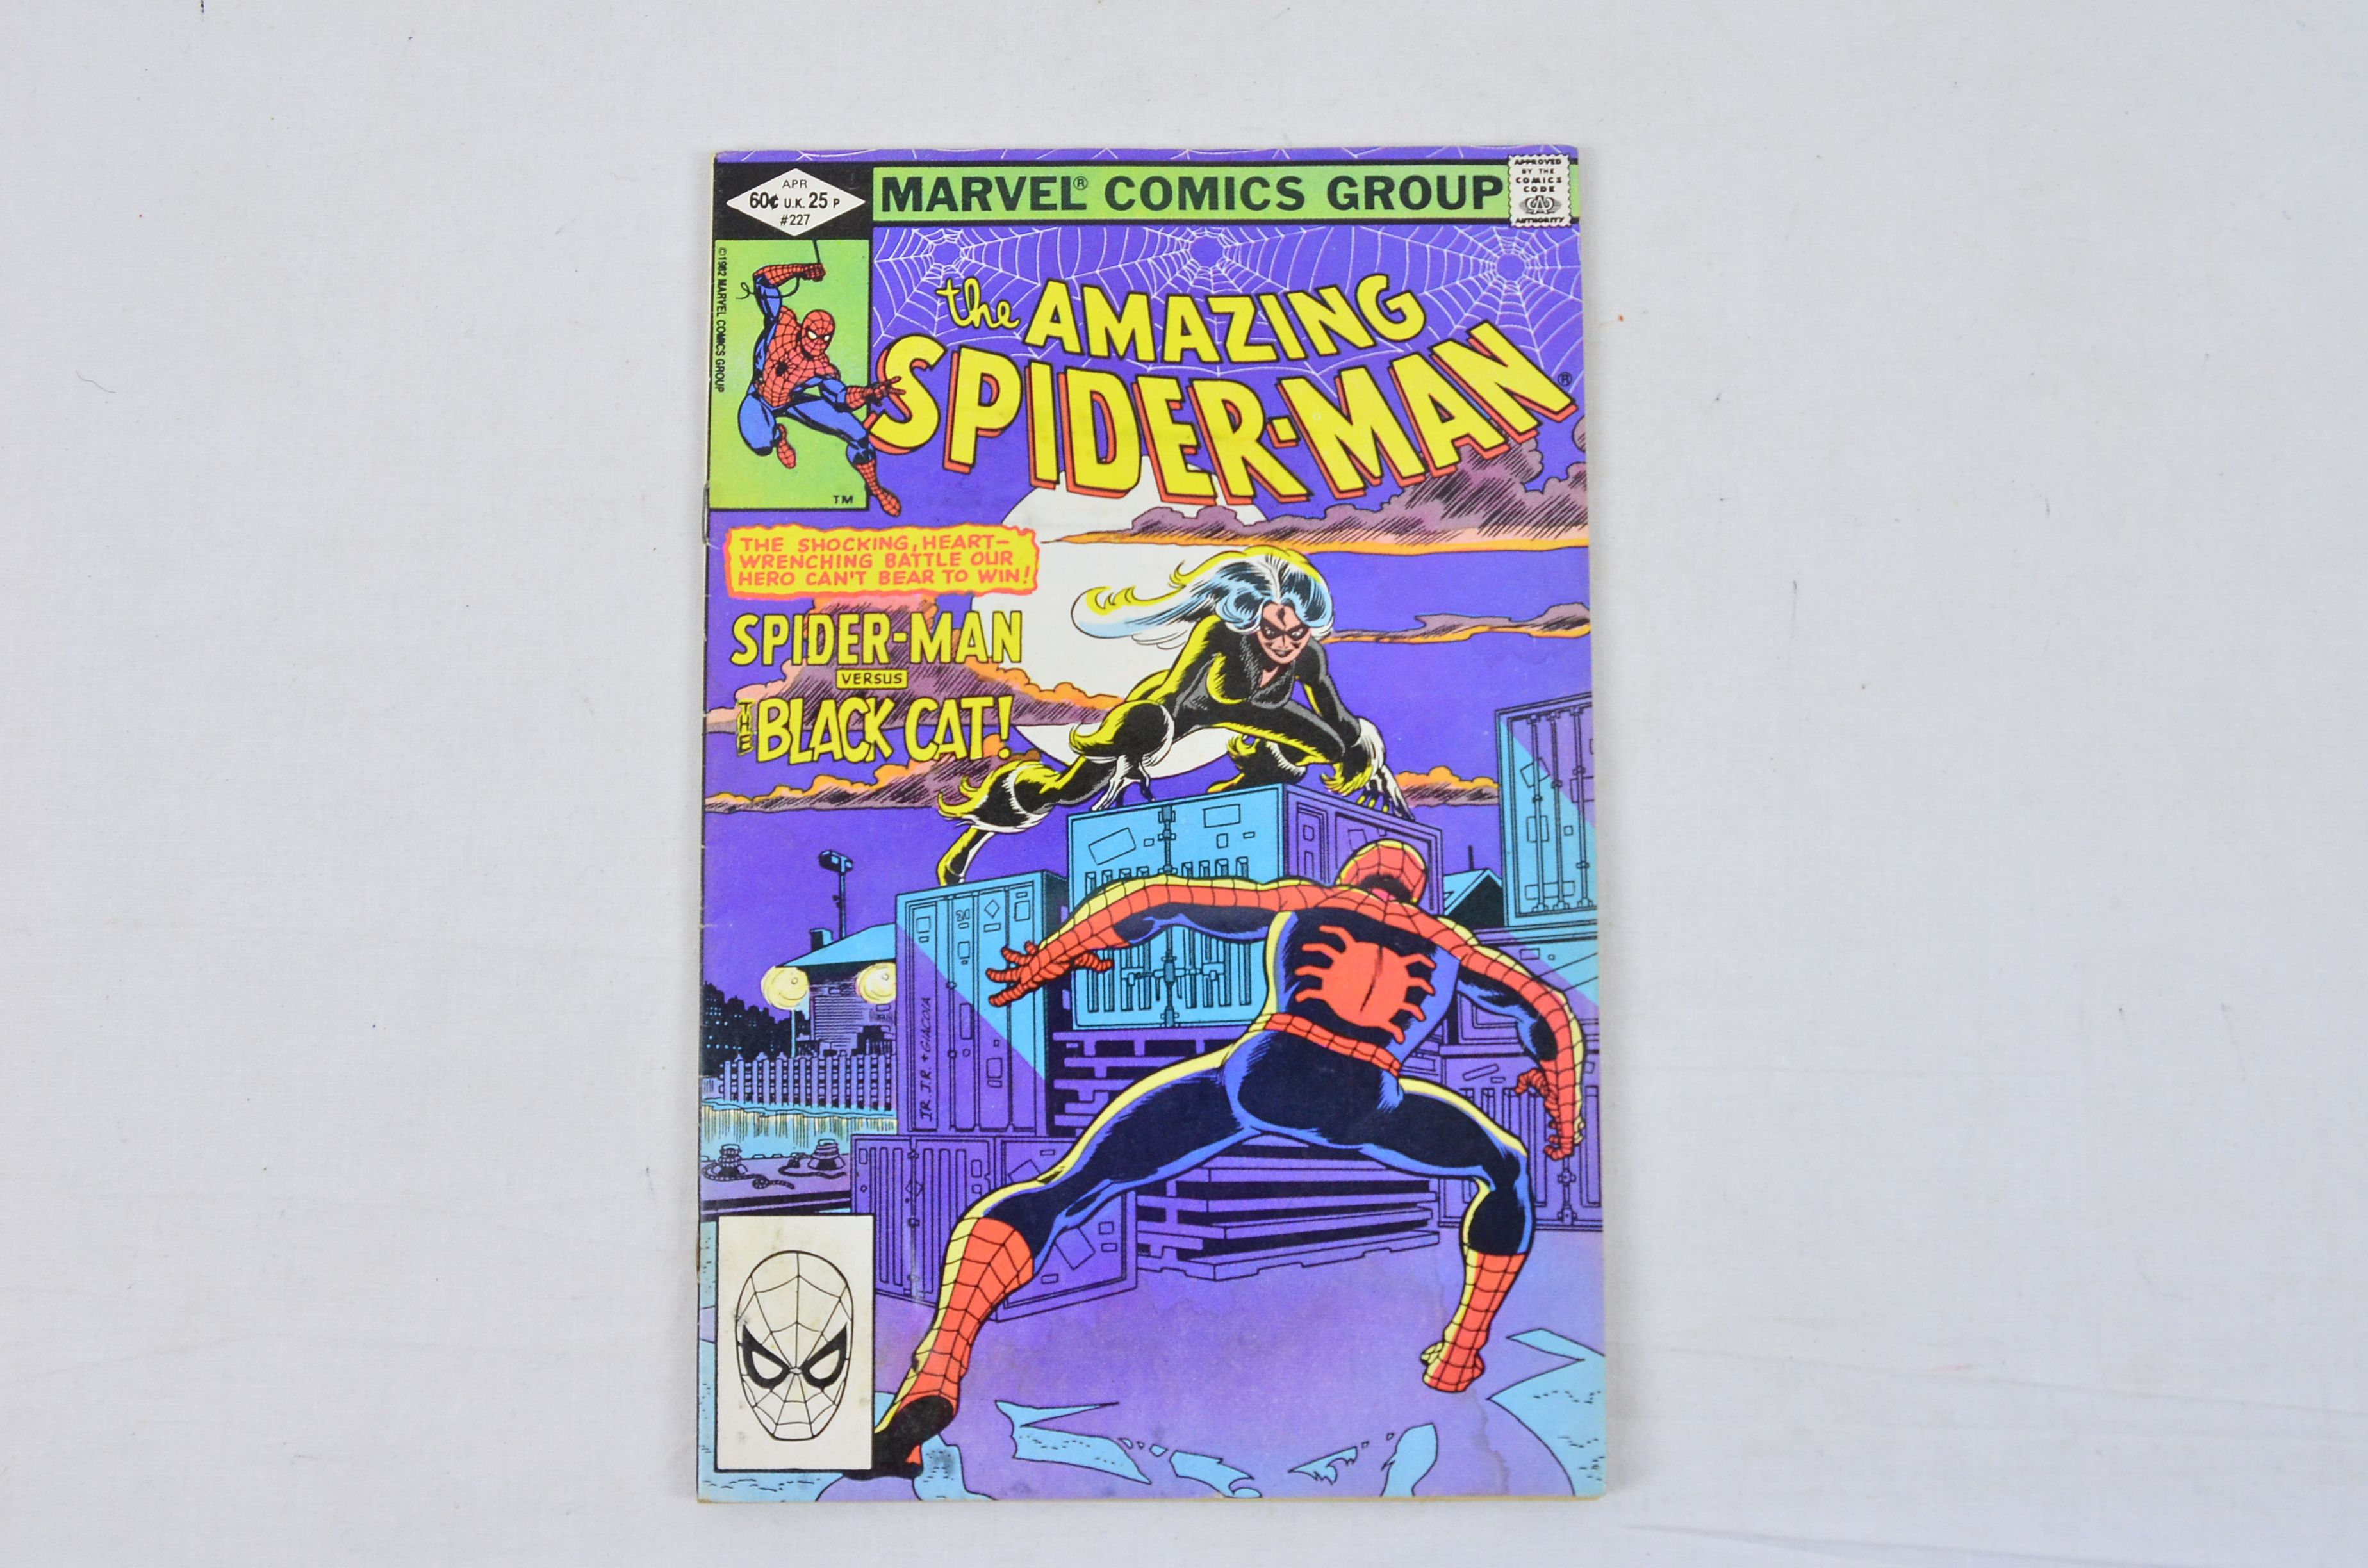 Vintage Marvel Comics Group Peter Parker, The Spectacular Spider-Man Collectable 4